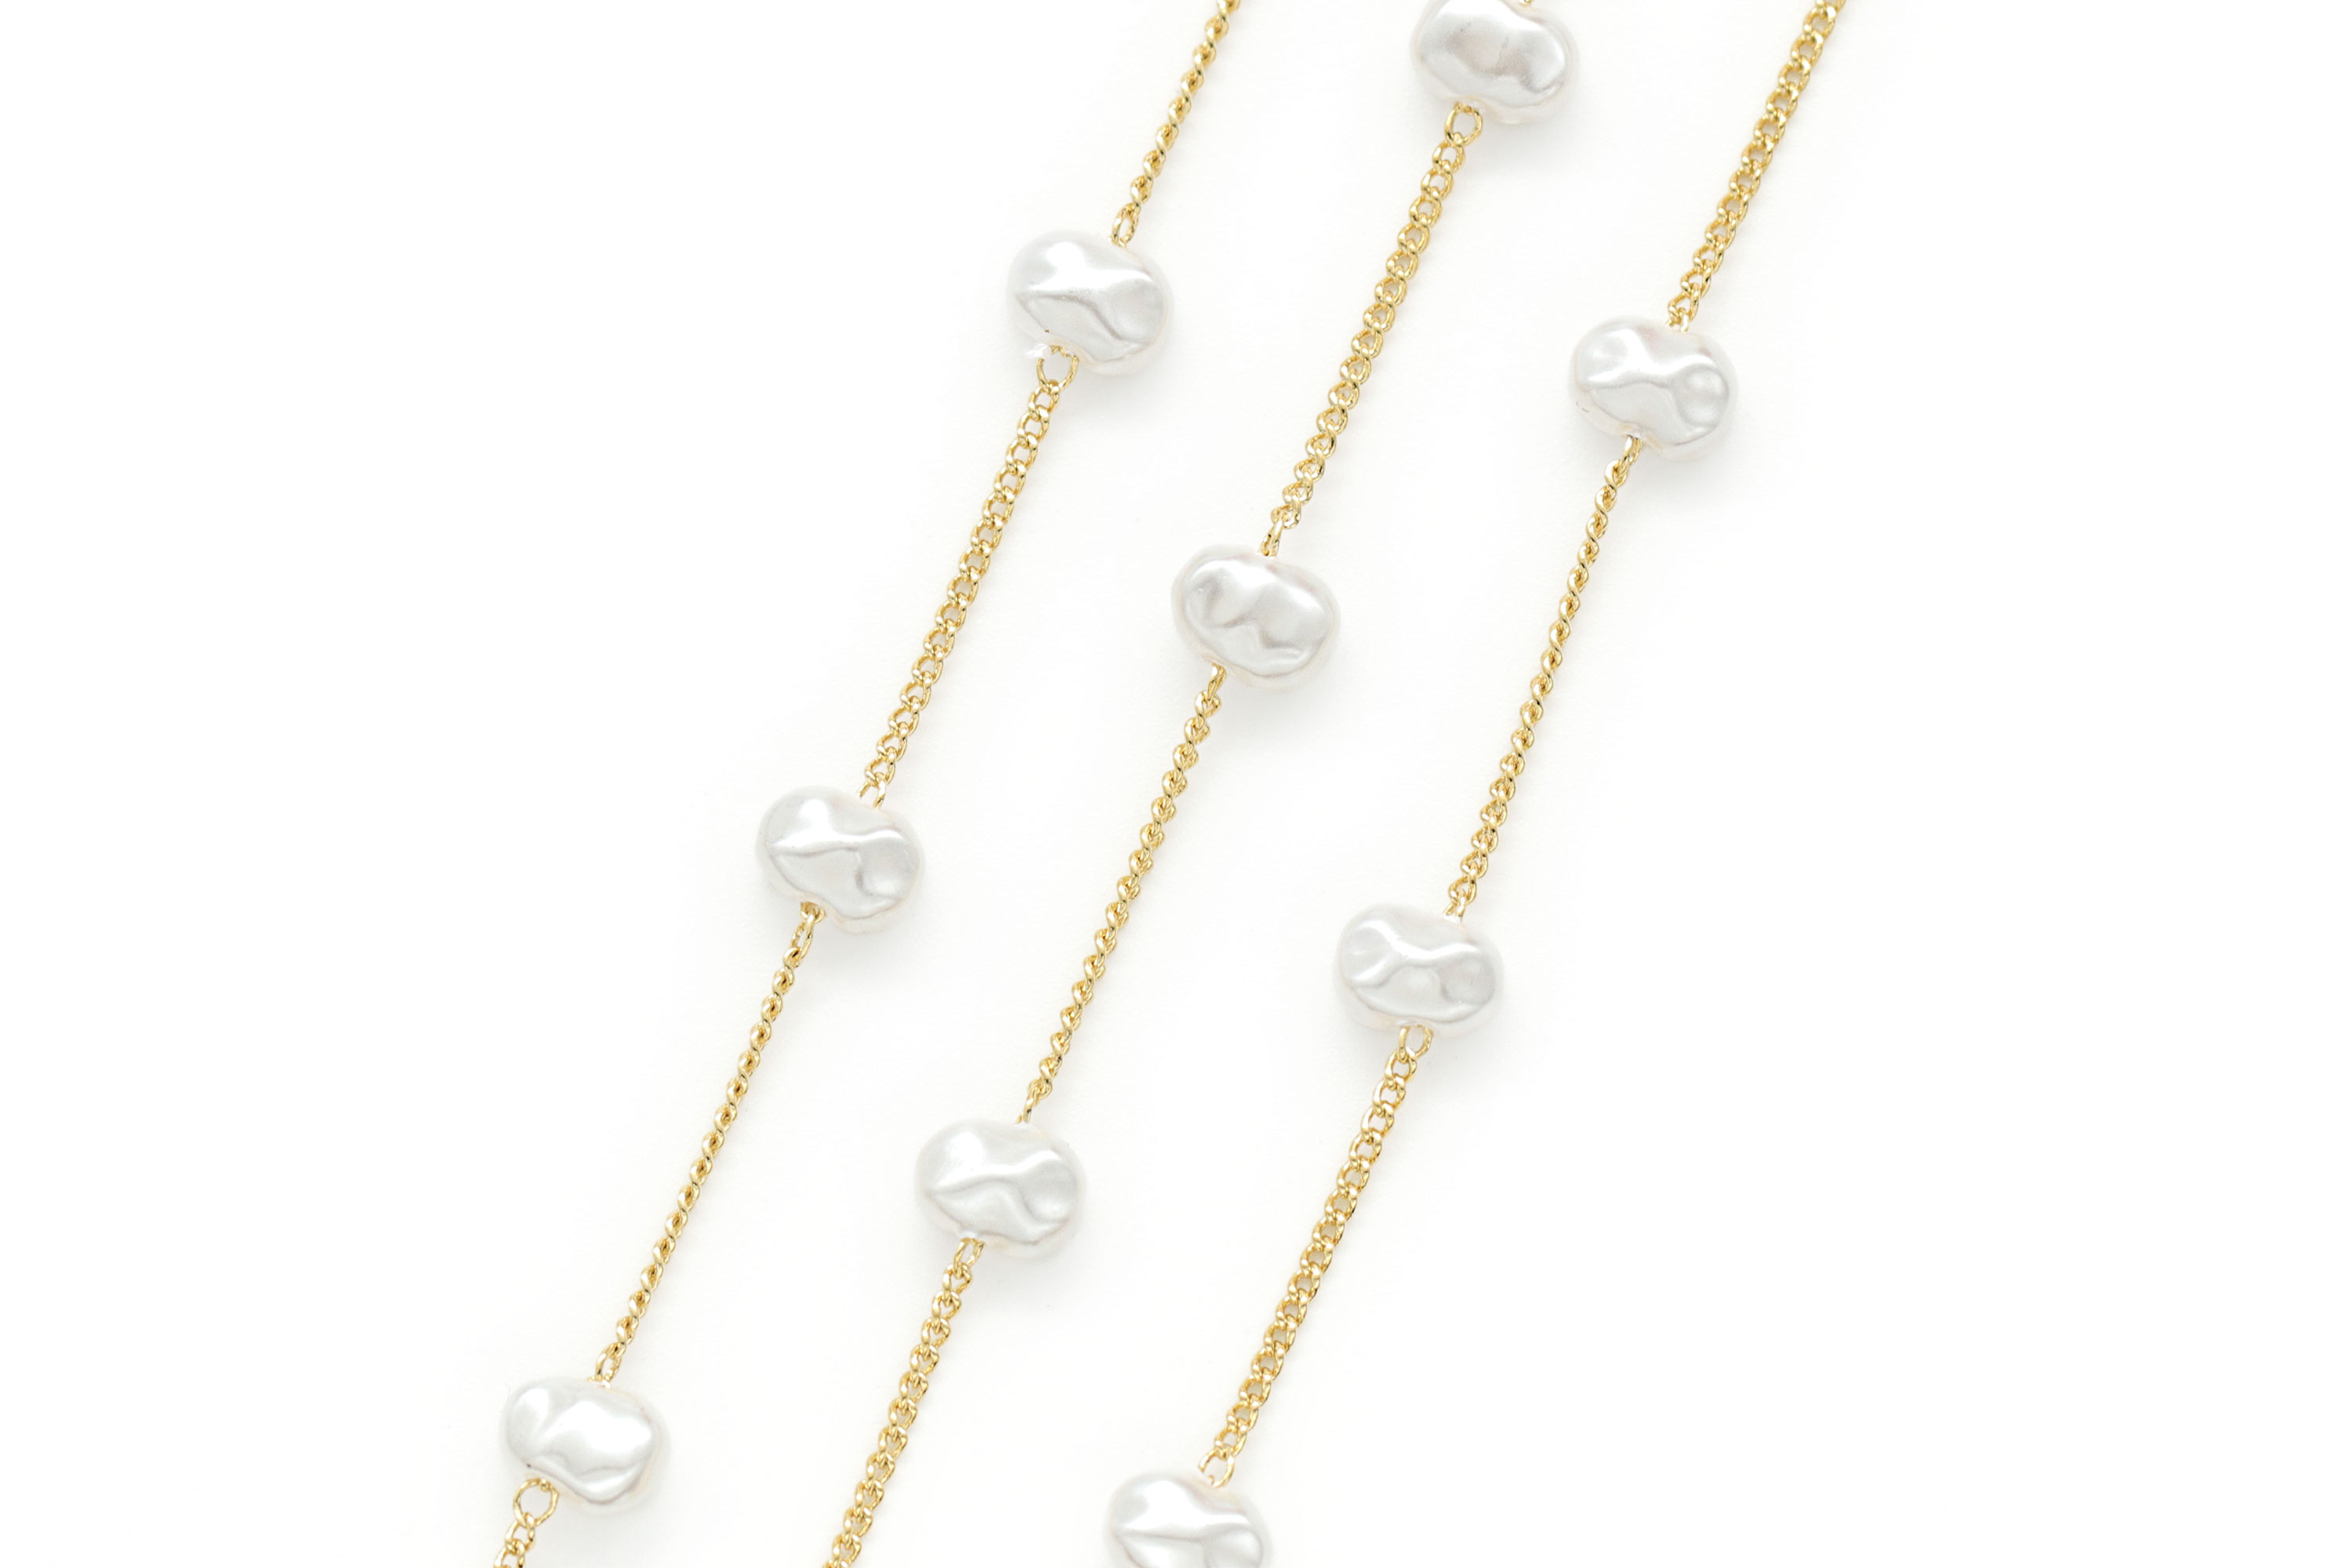 Acrylic beaded chain, CJ50-13